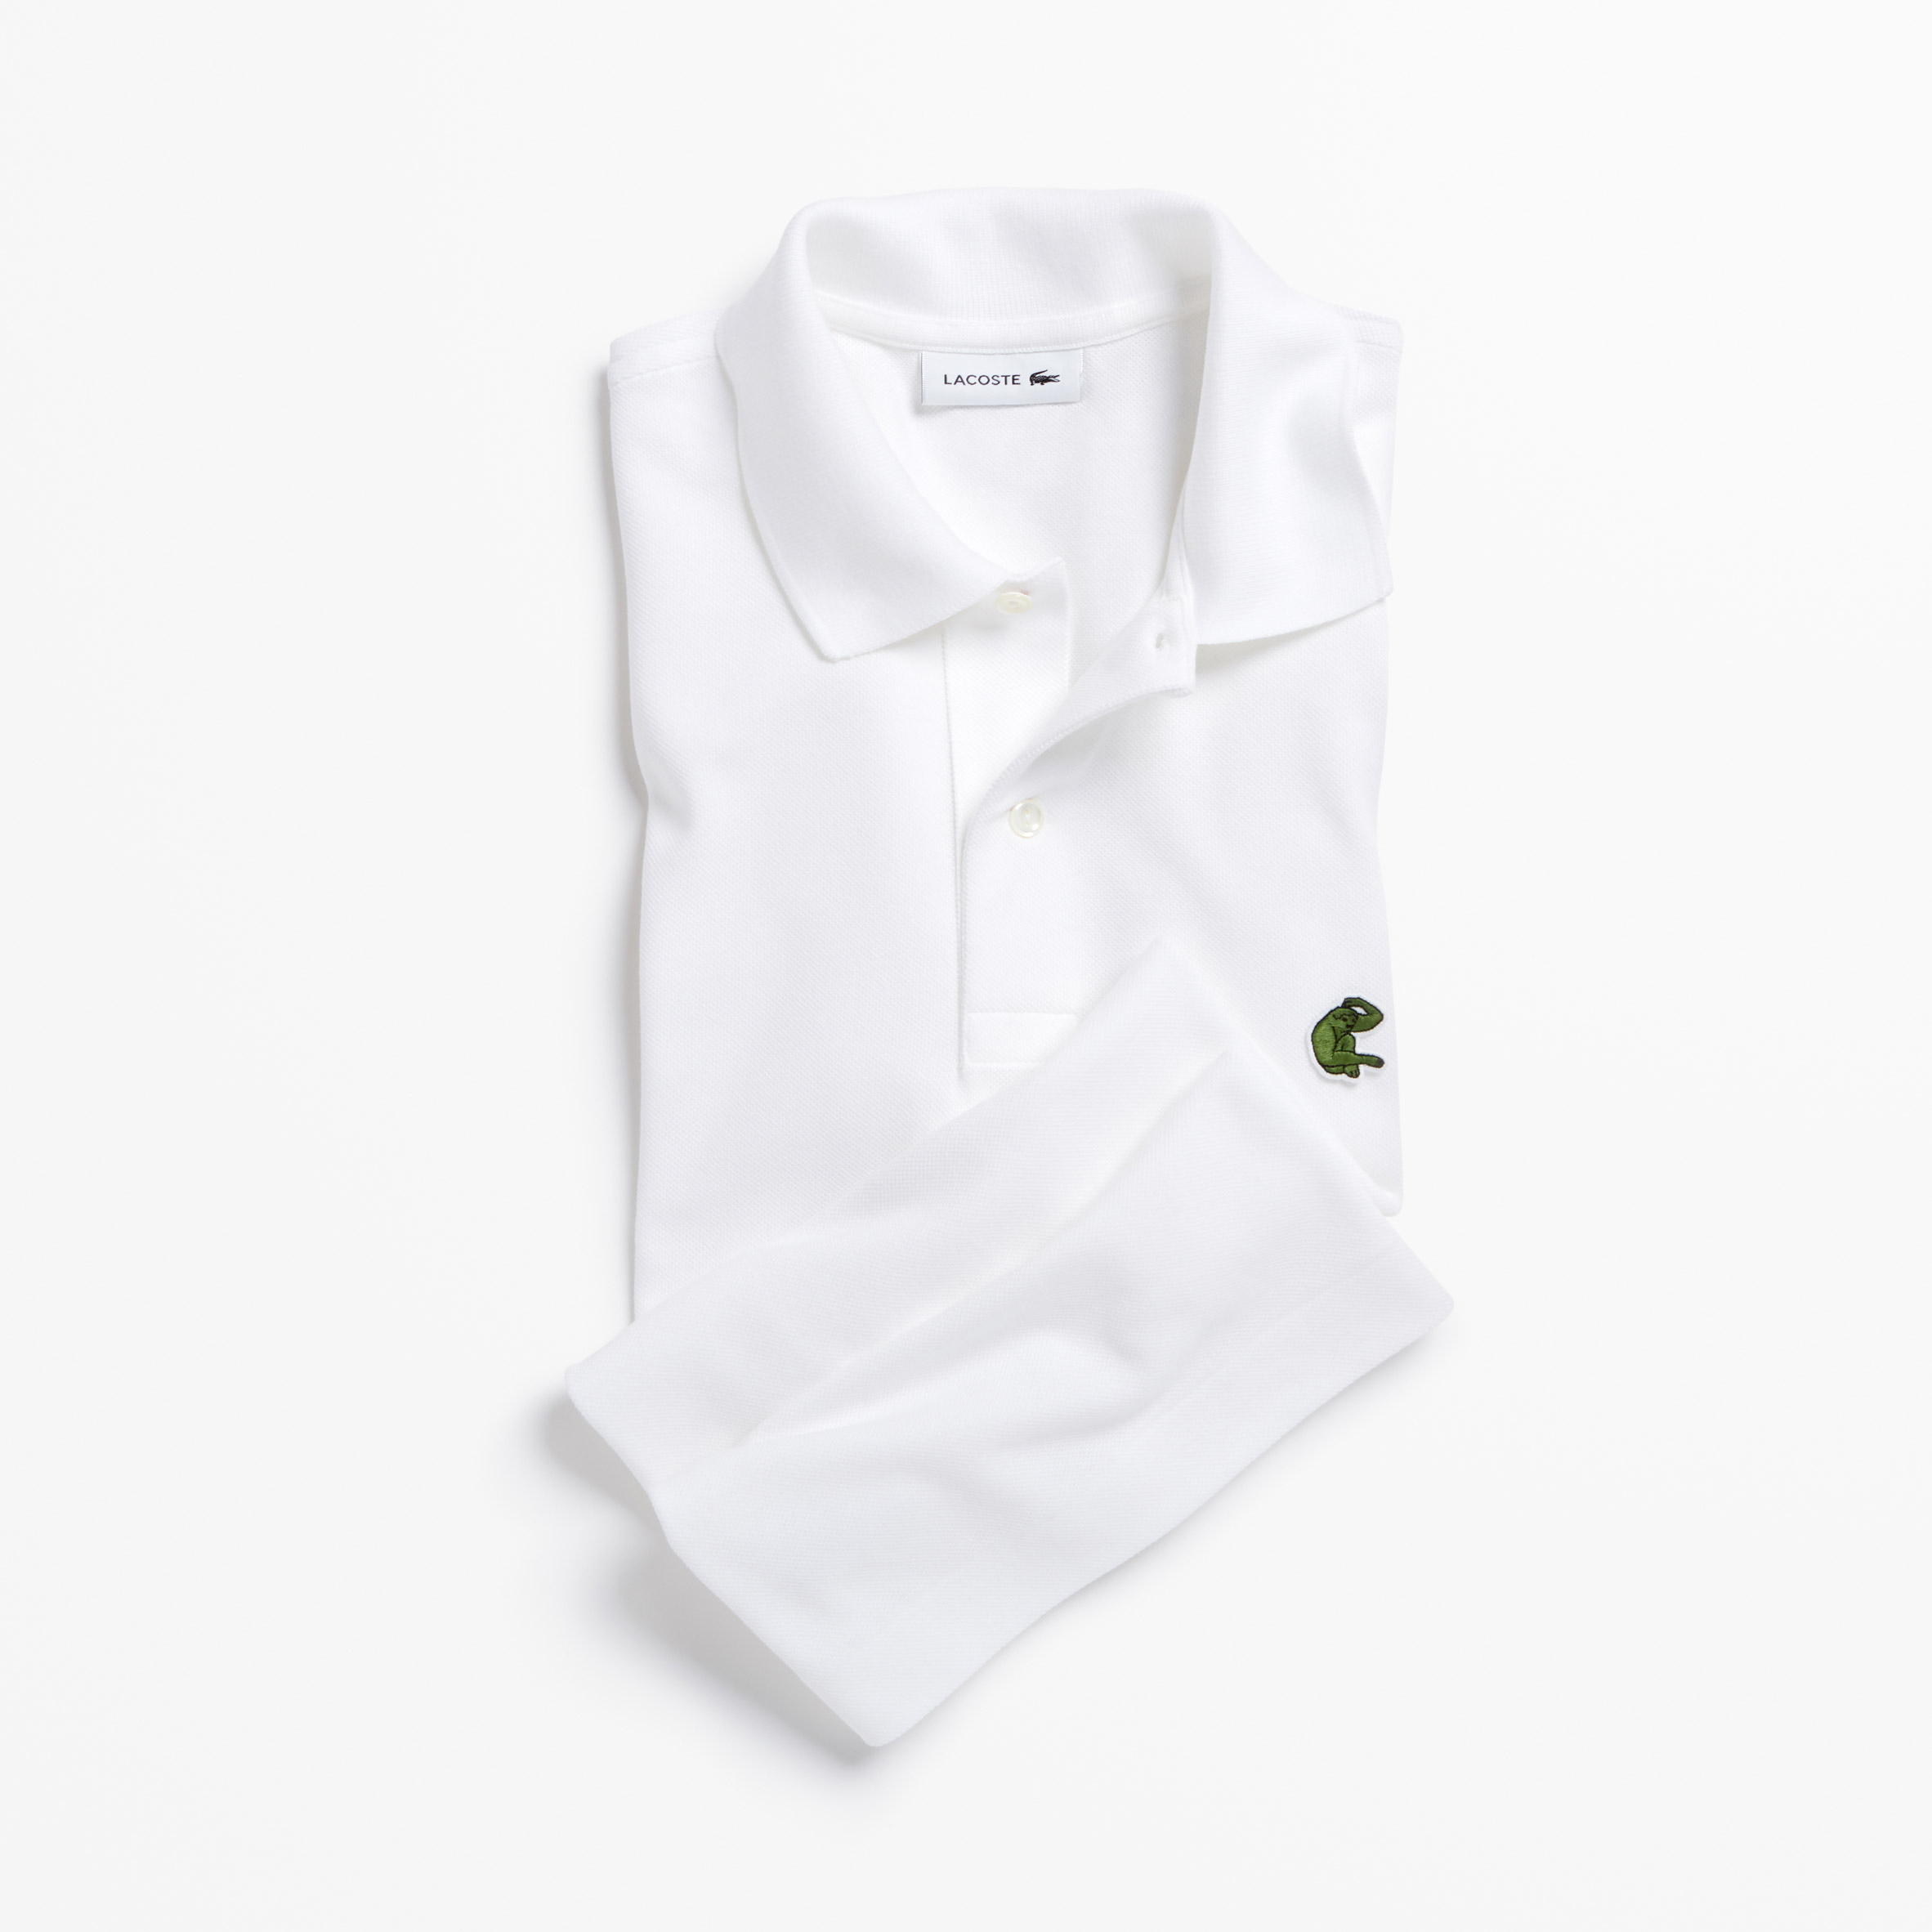 3ed947376 ... Lacoste's crocodile logo is replaced by endangered species for limited edition  polo shirts ...